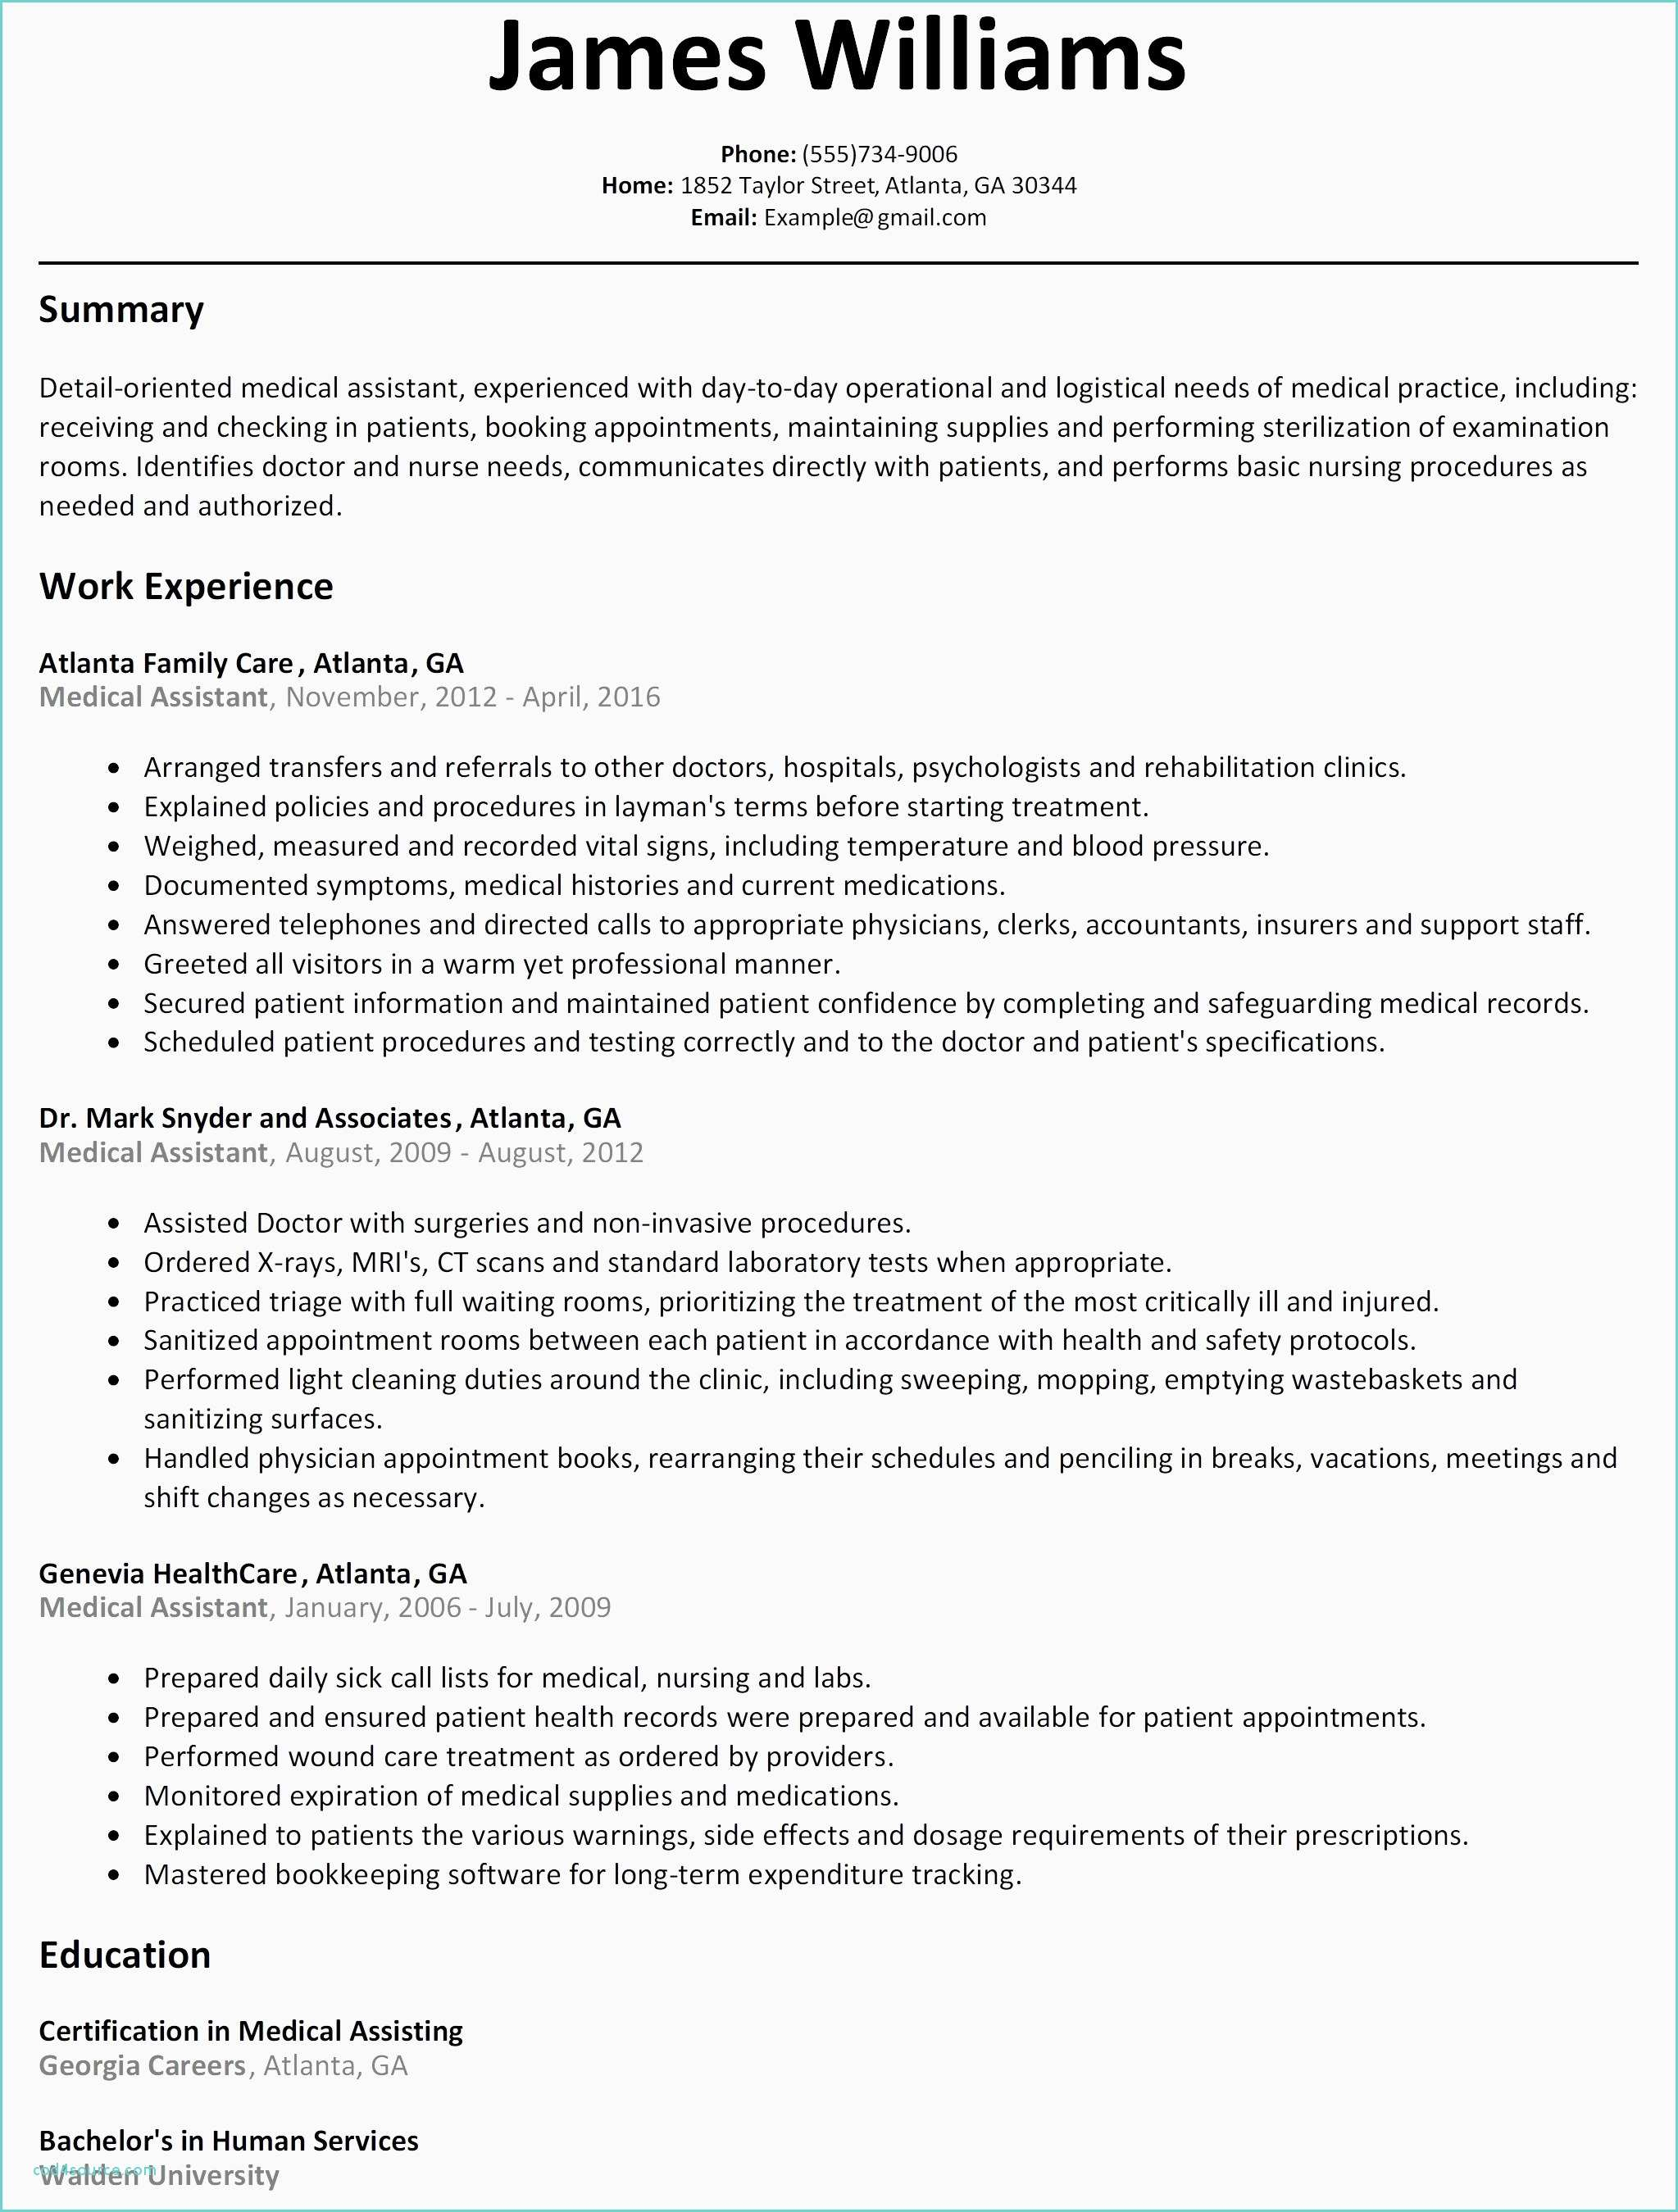 letter of medical necessity template speech therapy example-Medical Resume Sample New Receiving Clerk Resume Sample New Od Specialist Sample Resume Resume Beautiful Letter Medical Necessity 19-b